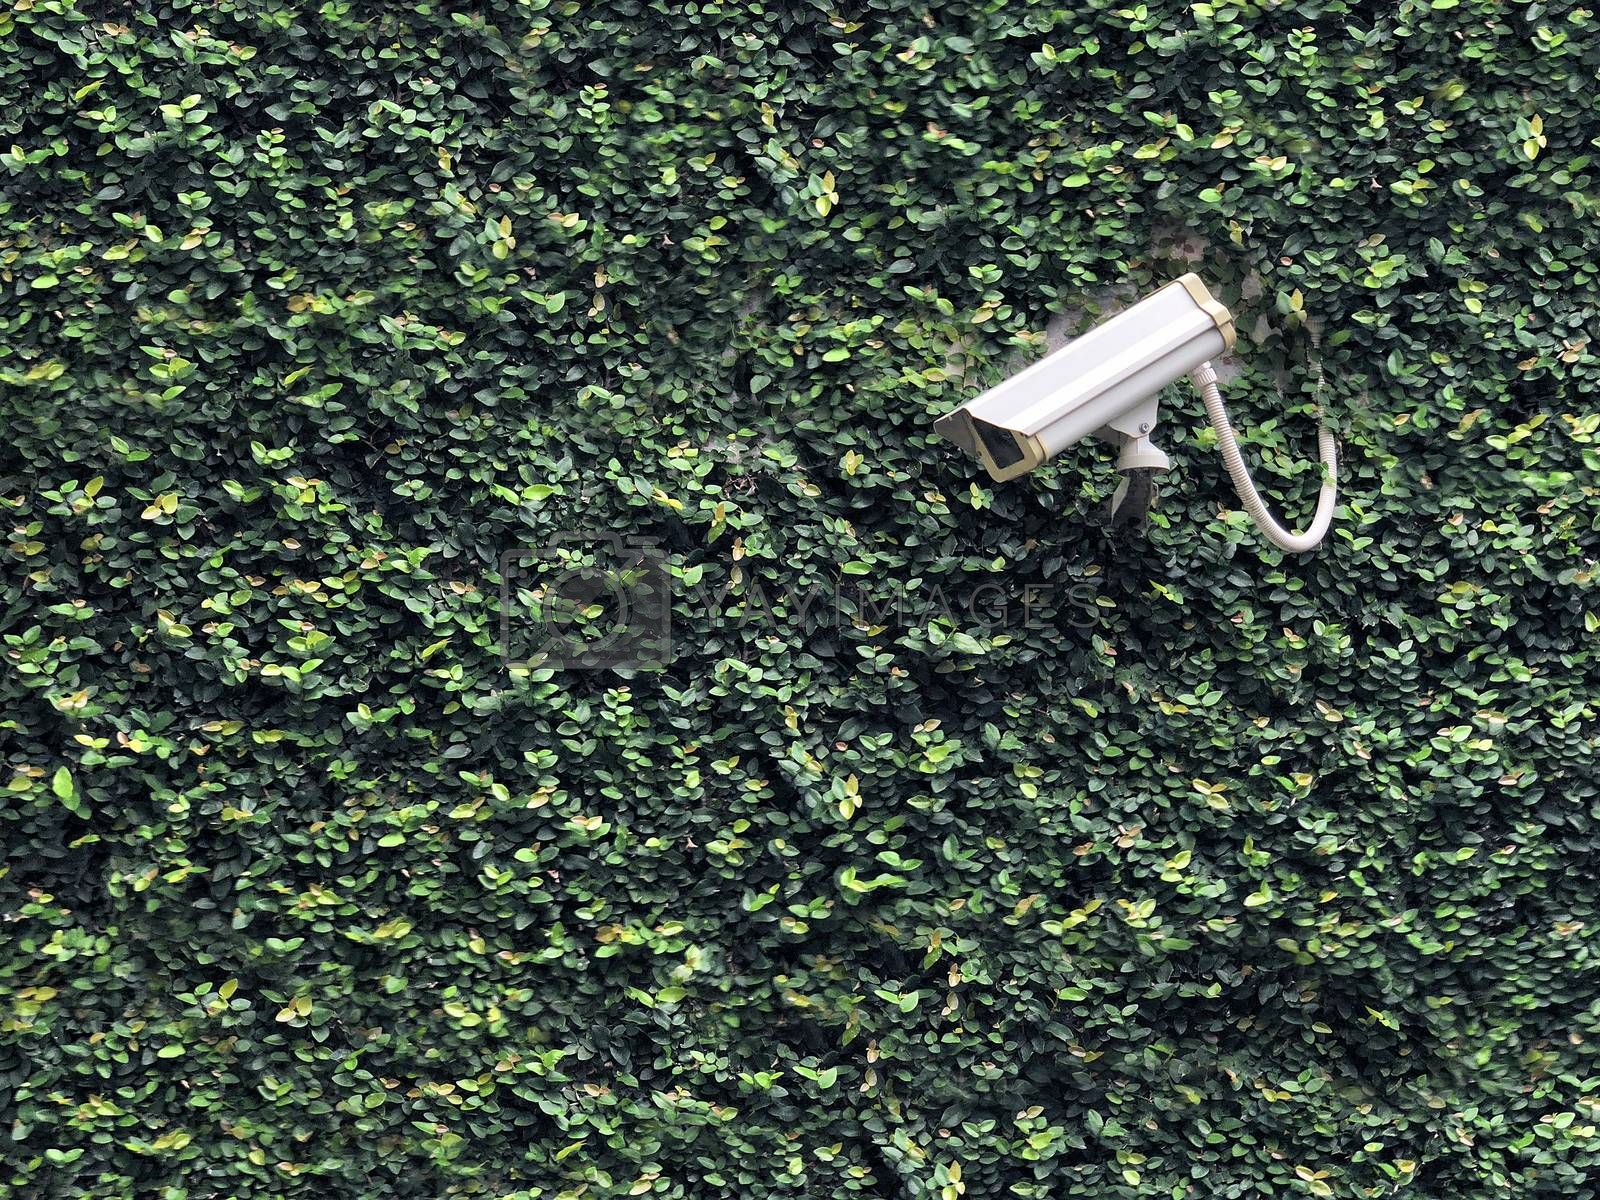 CCTV camera recording safety in our property on nature background